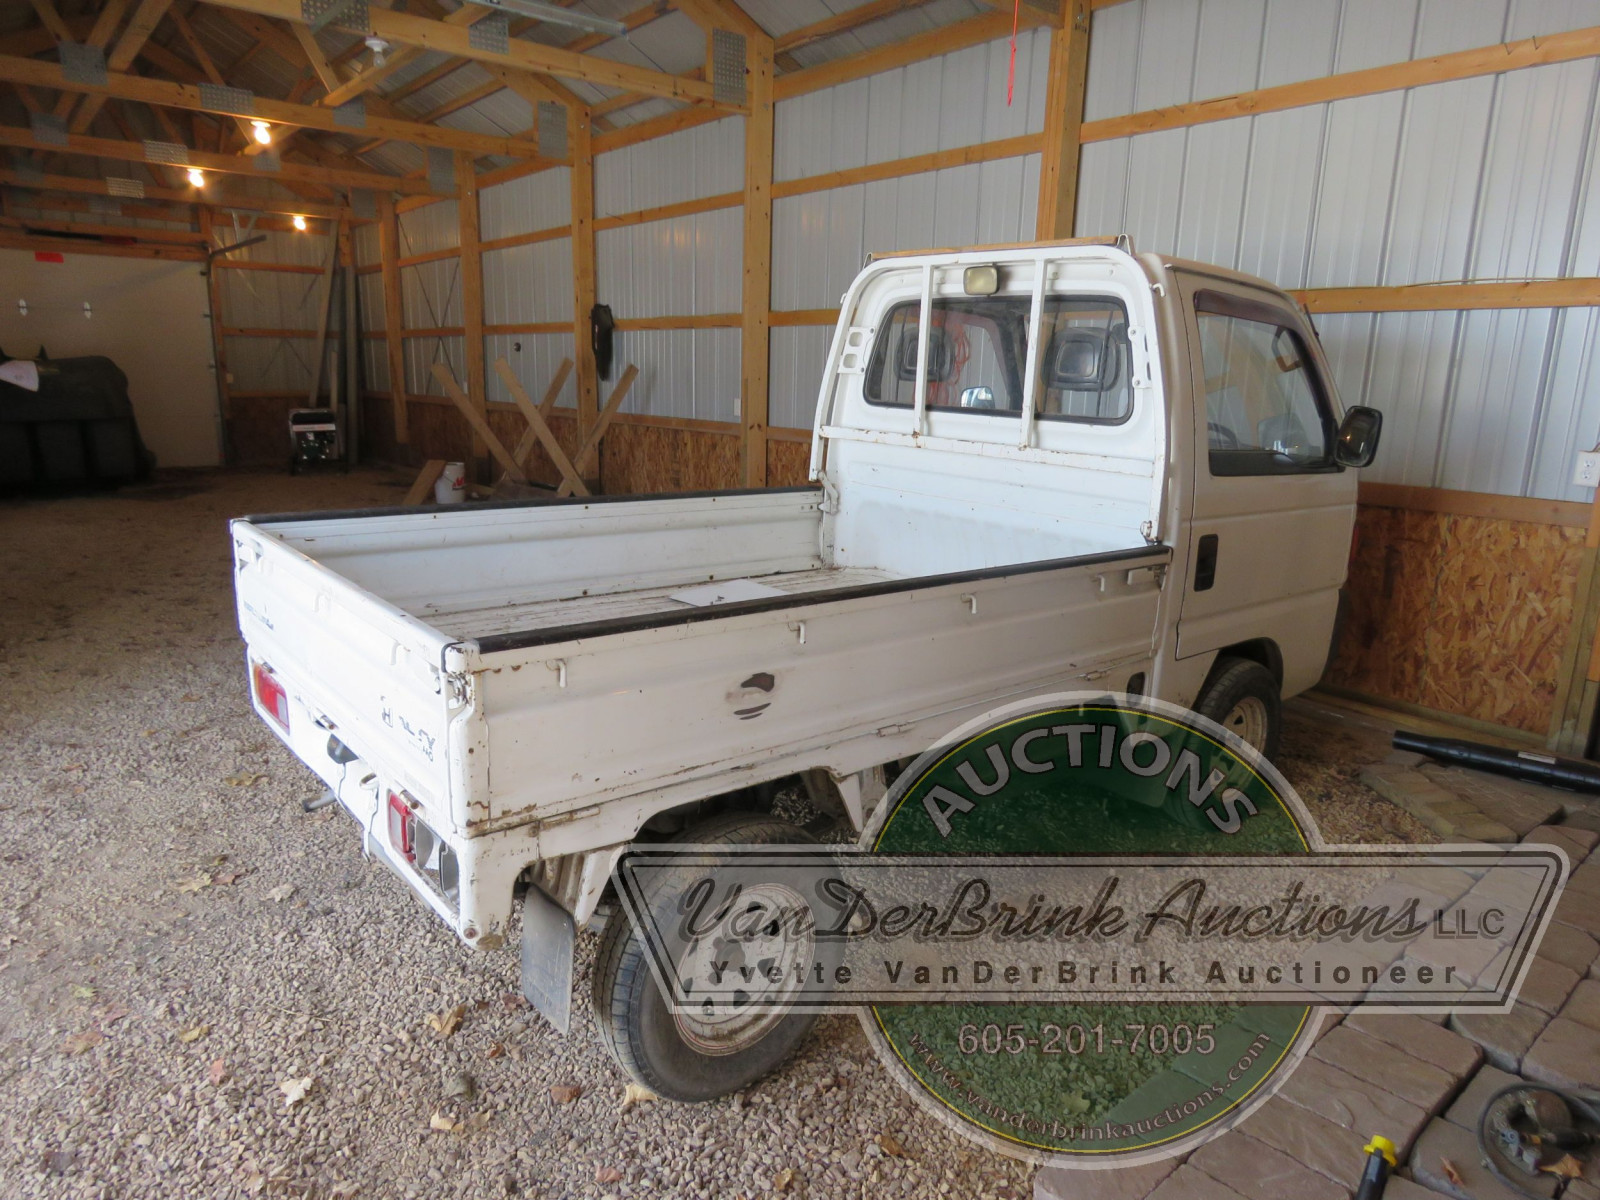 Real Time 4x4 Utility Truck - Image 3